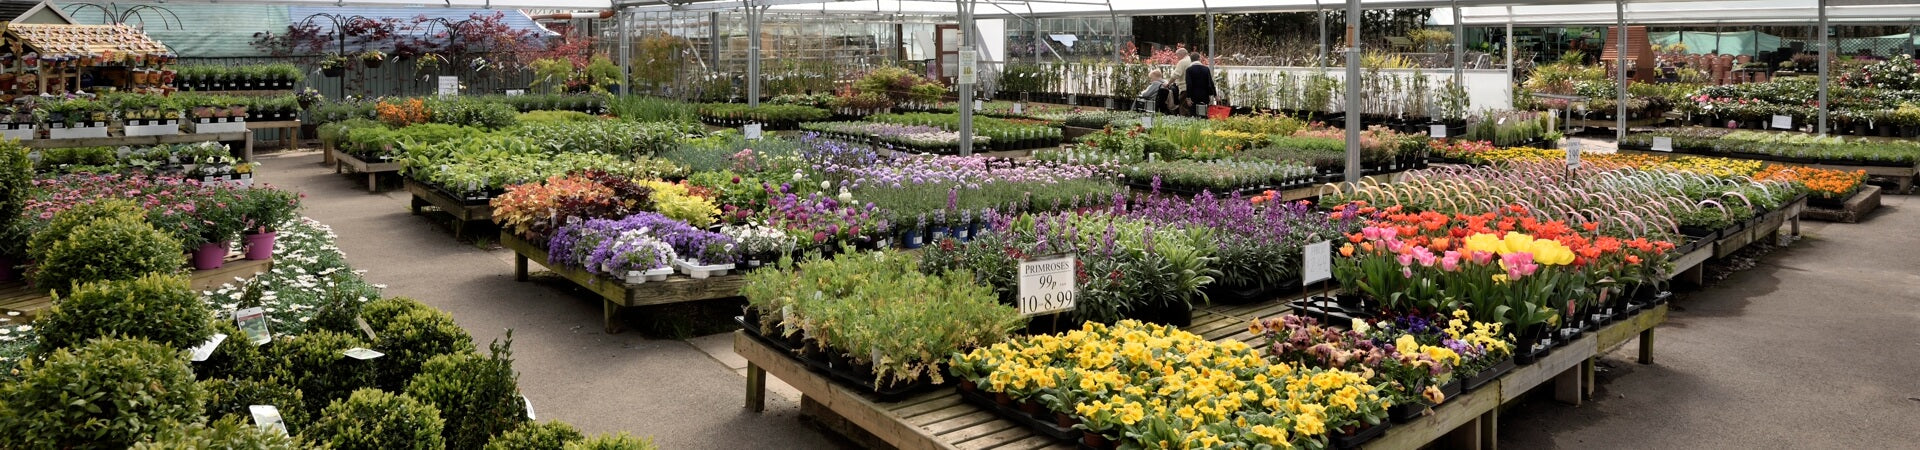 Plants for every home & garden, patios, borders, containers & hanging baskets